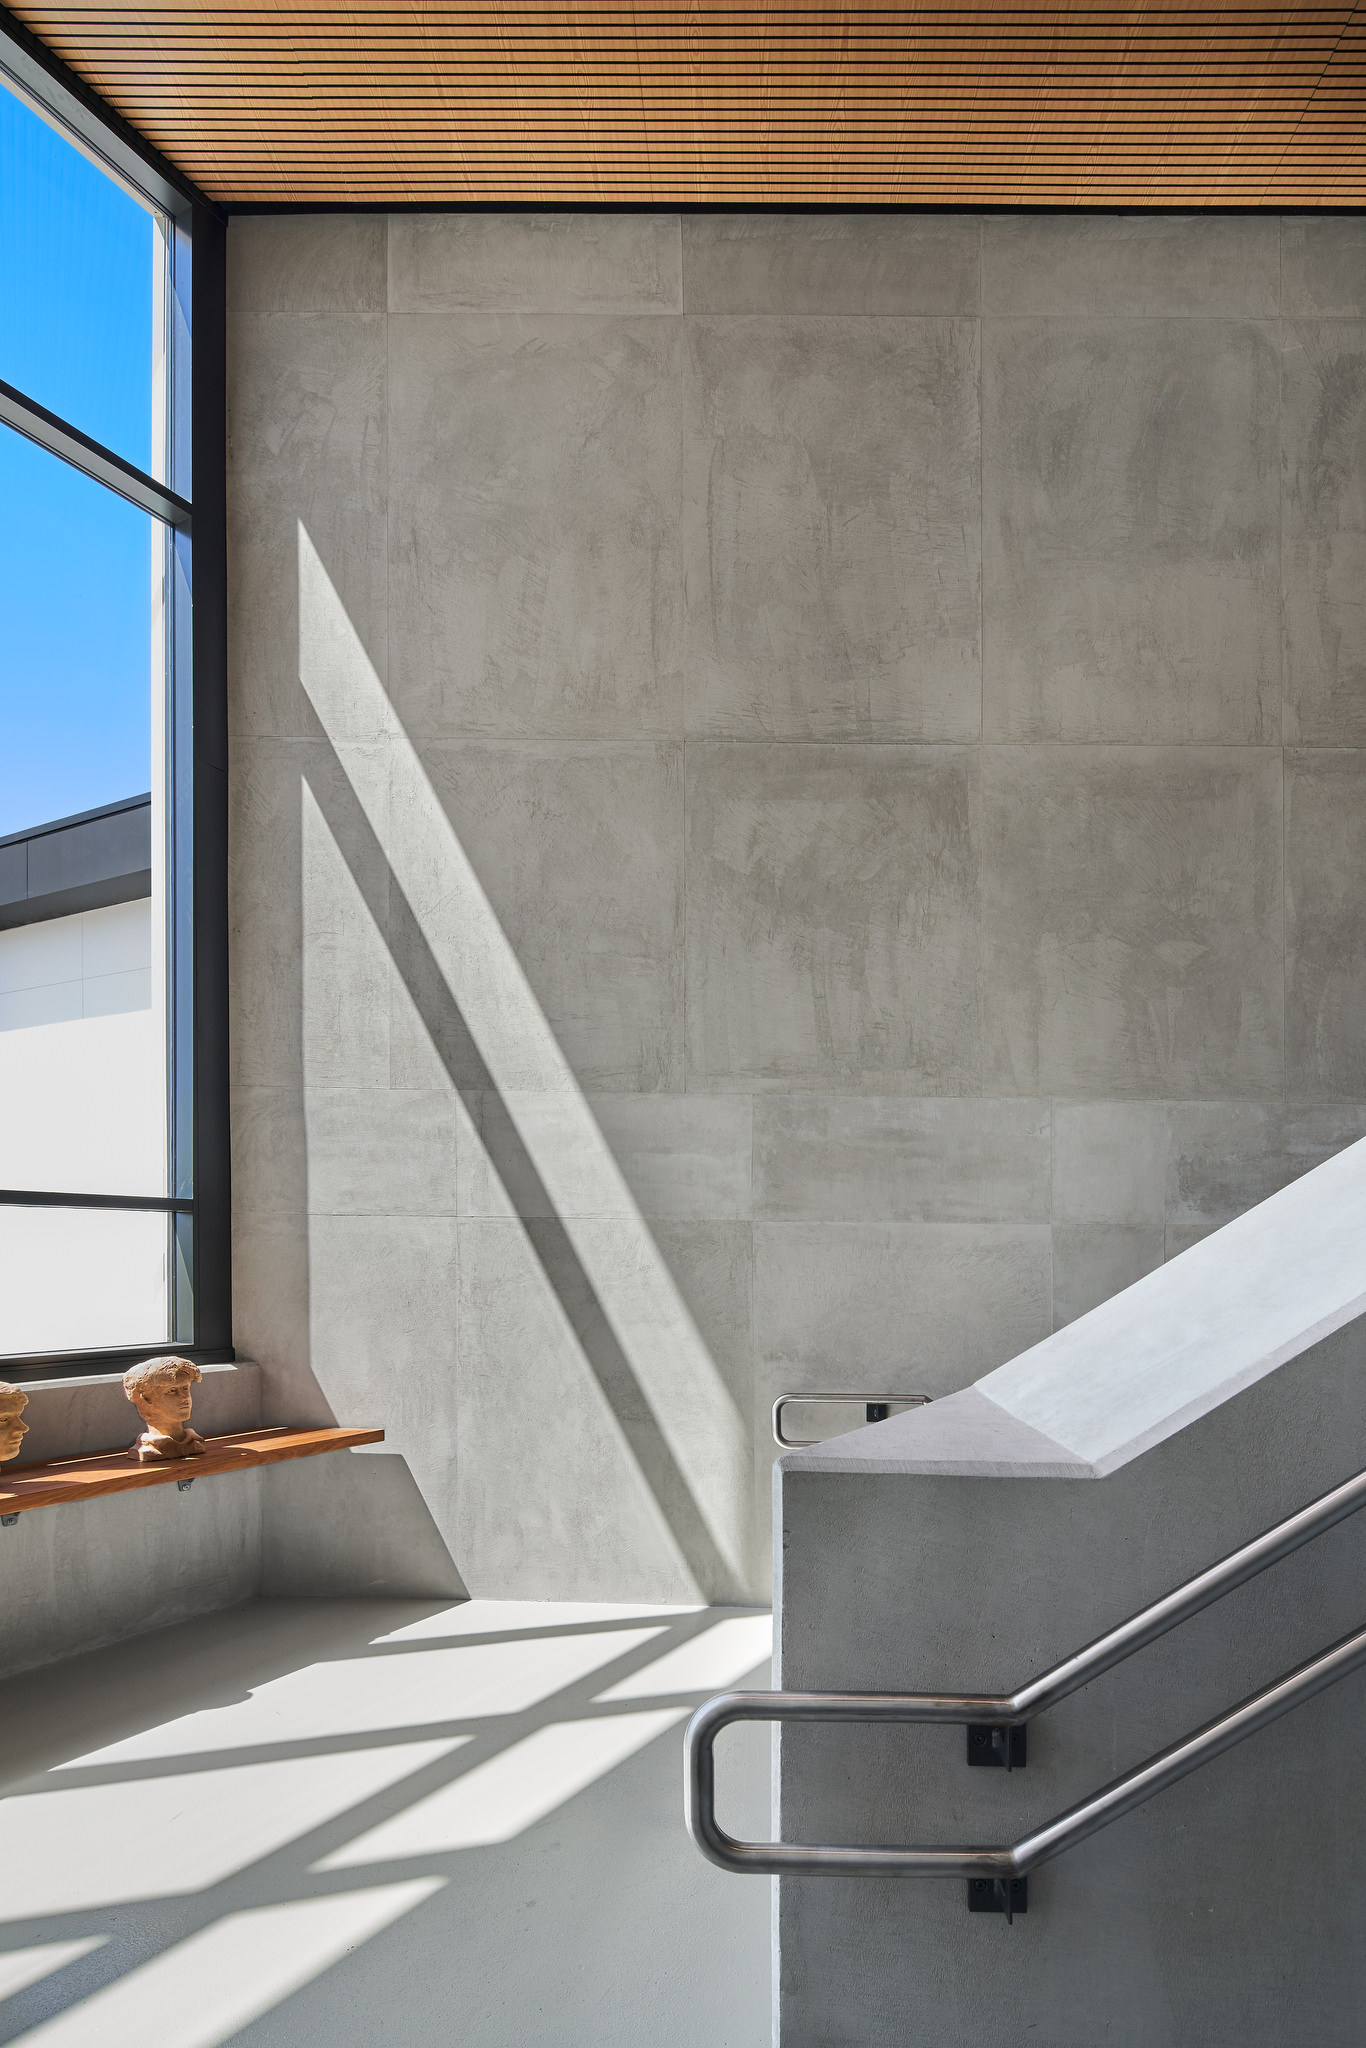 Architecturally designed school building finished in exposed concrete